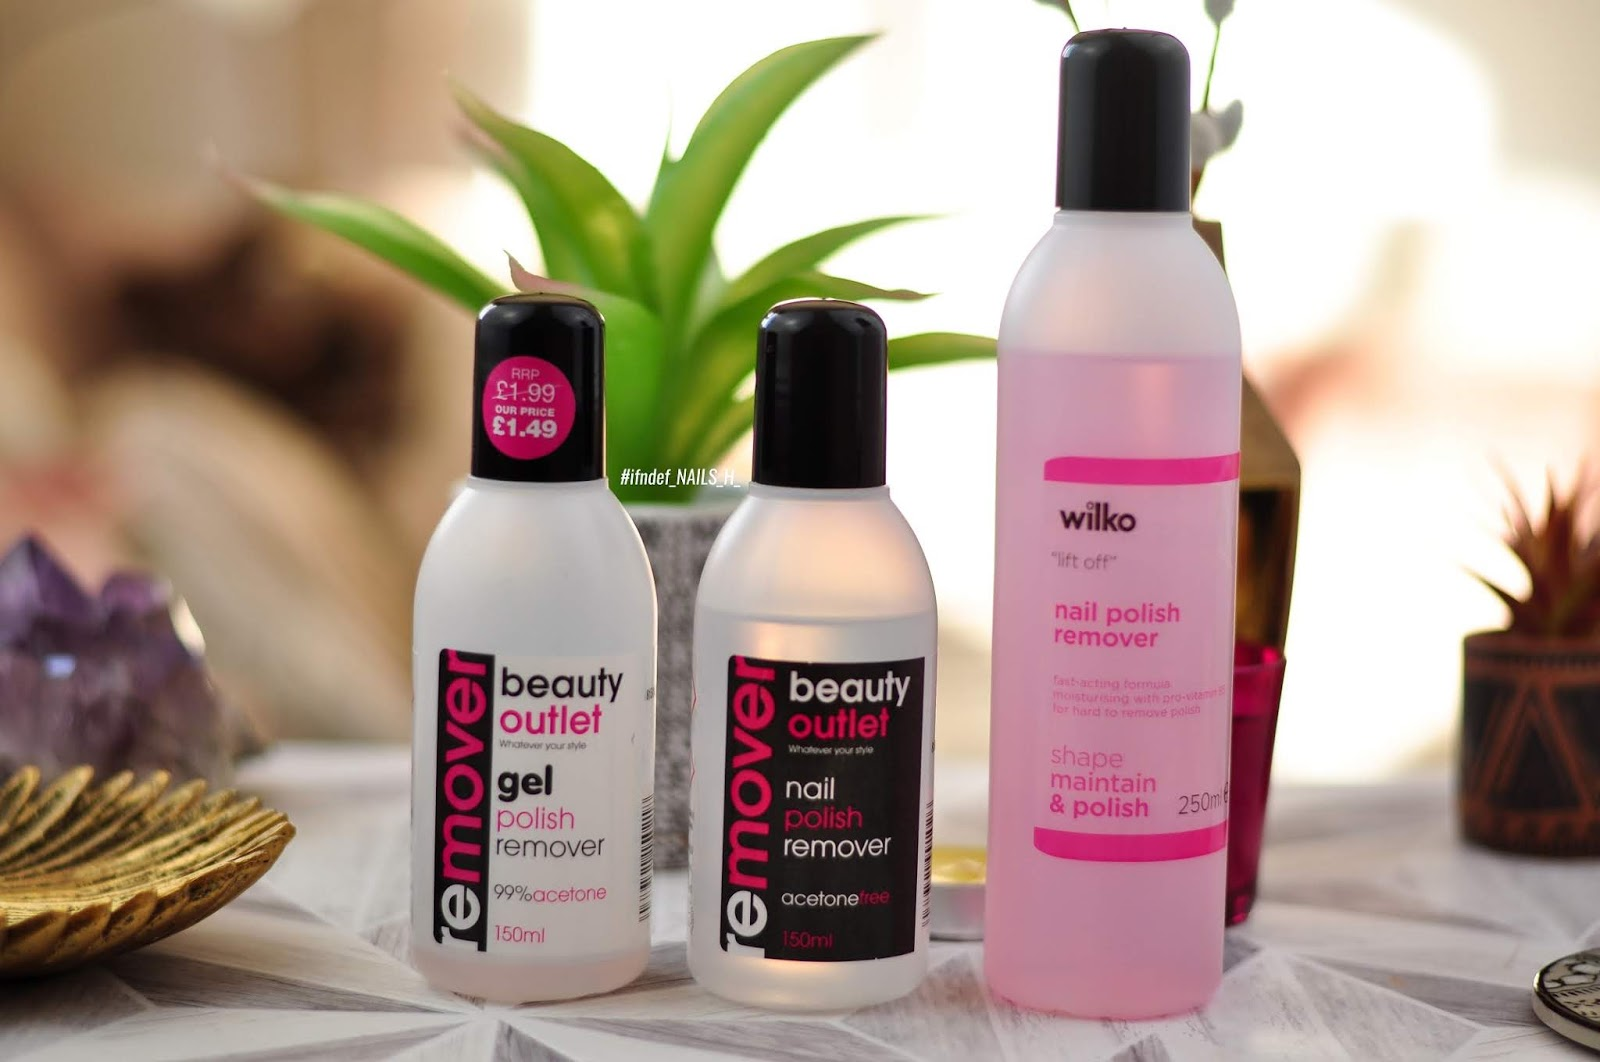 Do Pick The Right Polish Remover Nail Polish Removers With